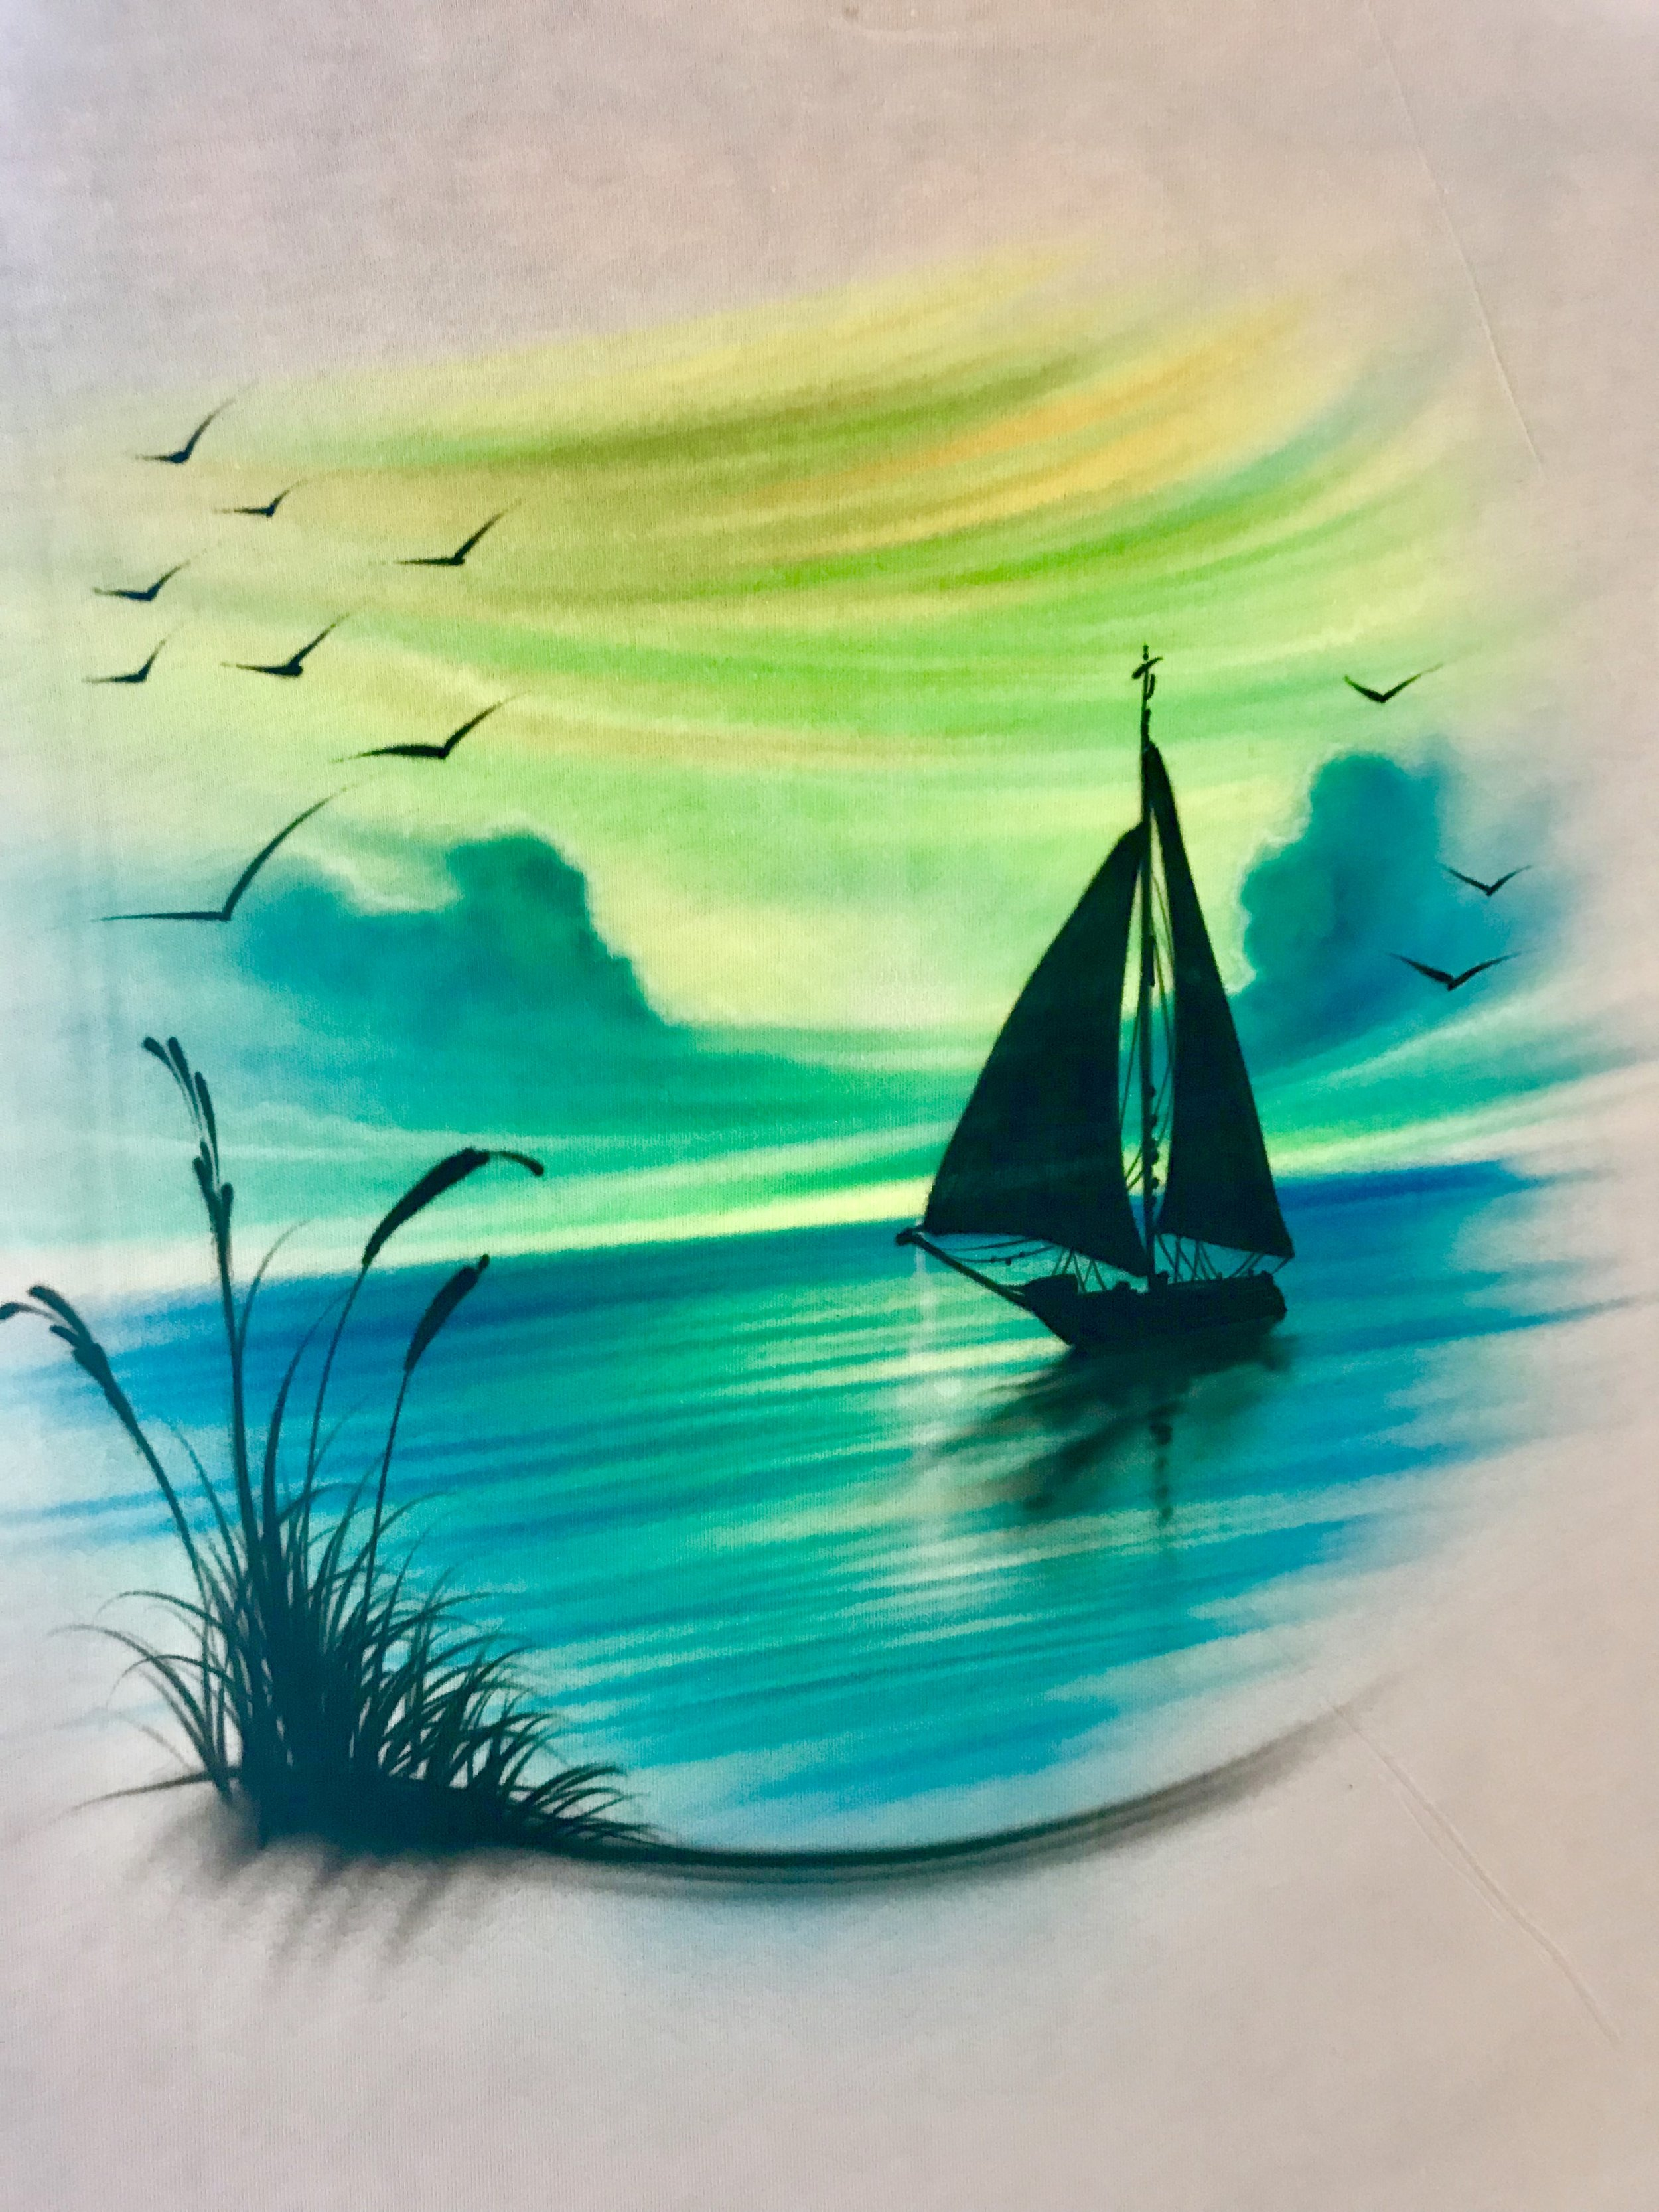 Airbrushed Levi's t-shirt Camarillo sailboat beach scene